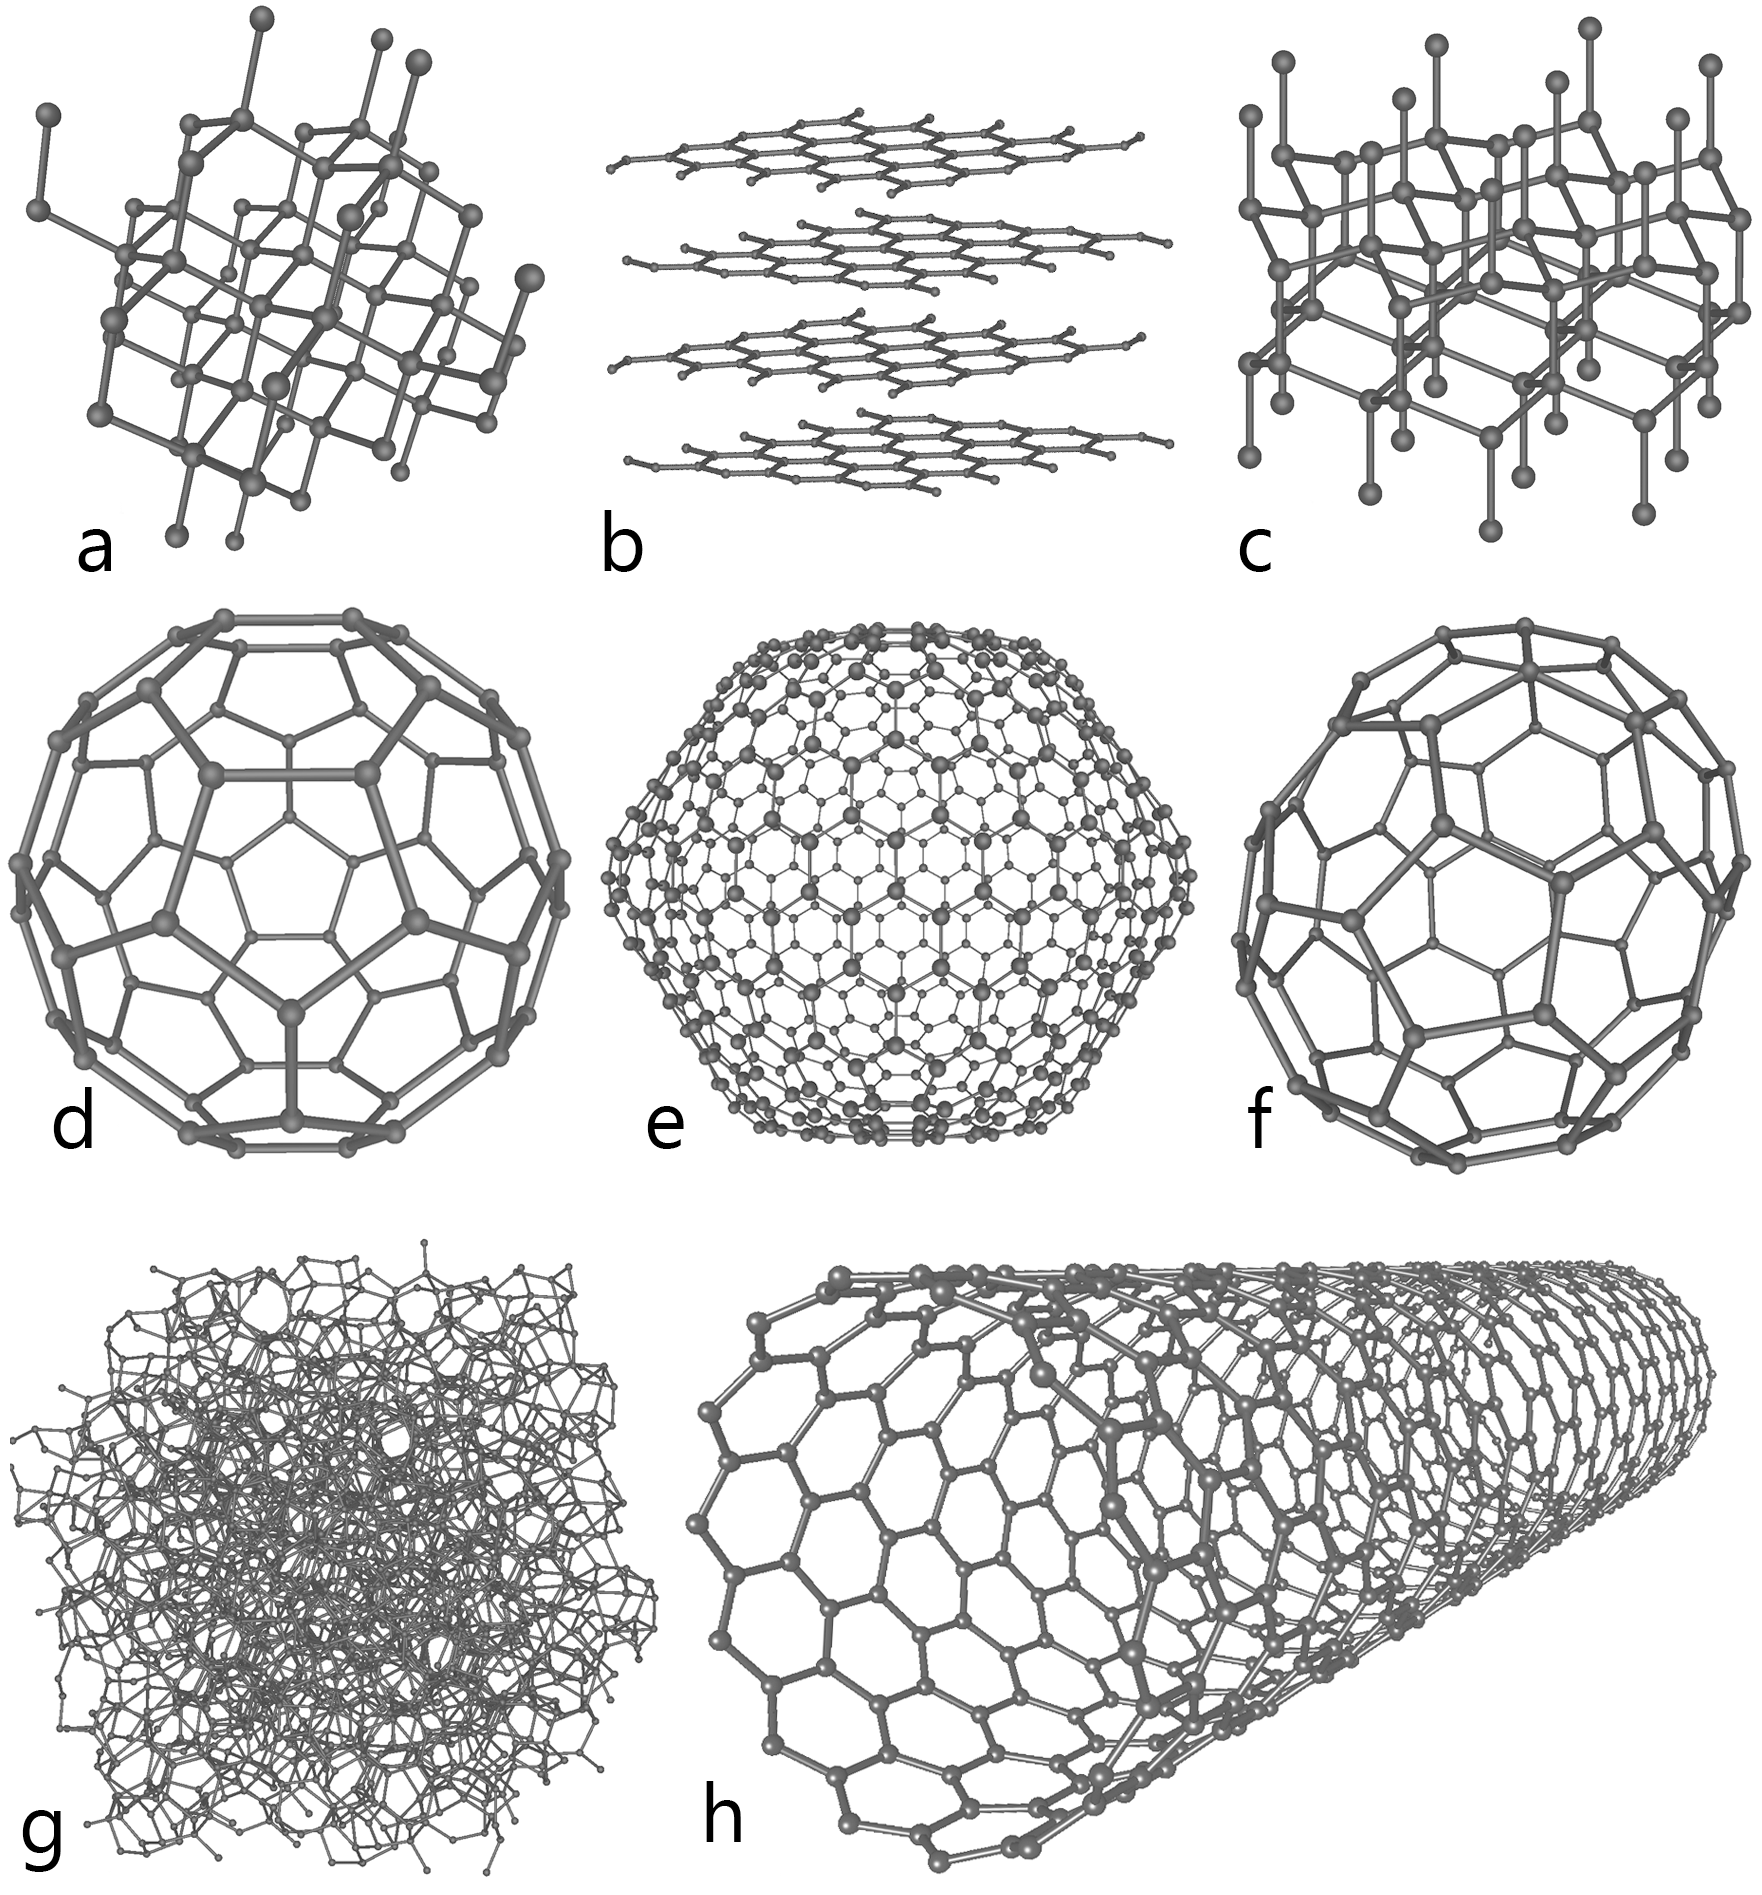 File:Eight Allotropes of Carbon.png - Wikipedia, the free encyclopedia